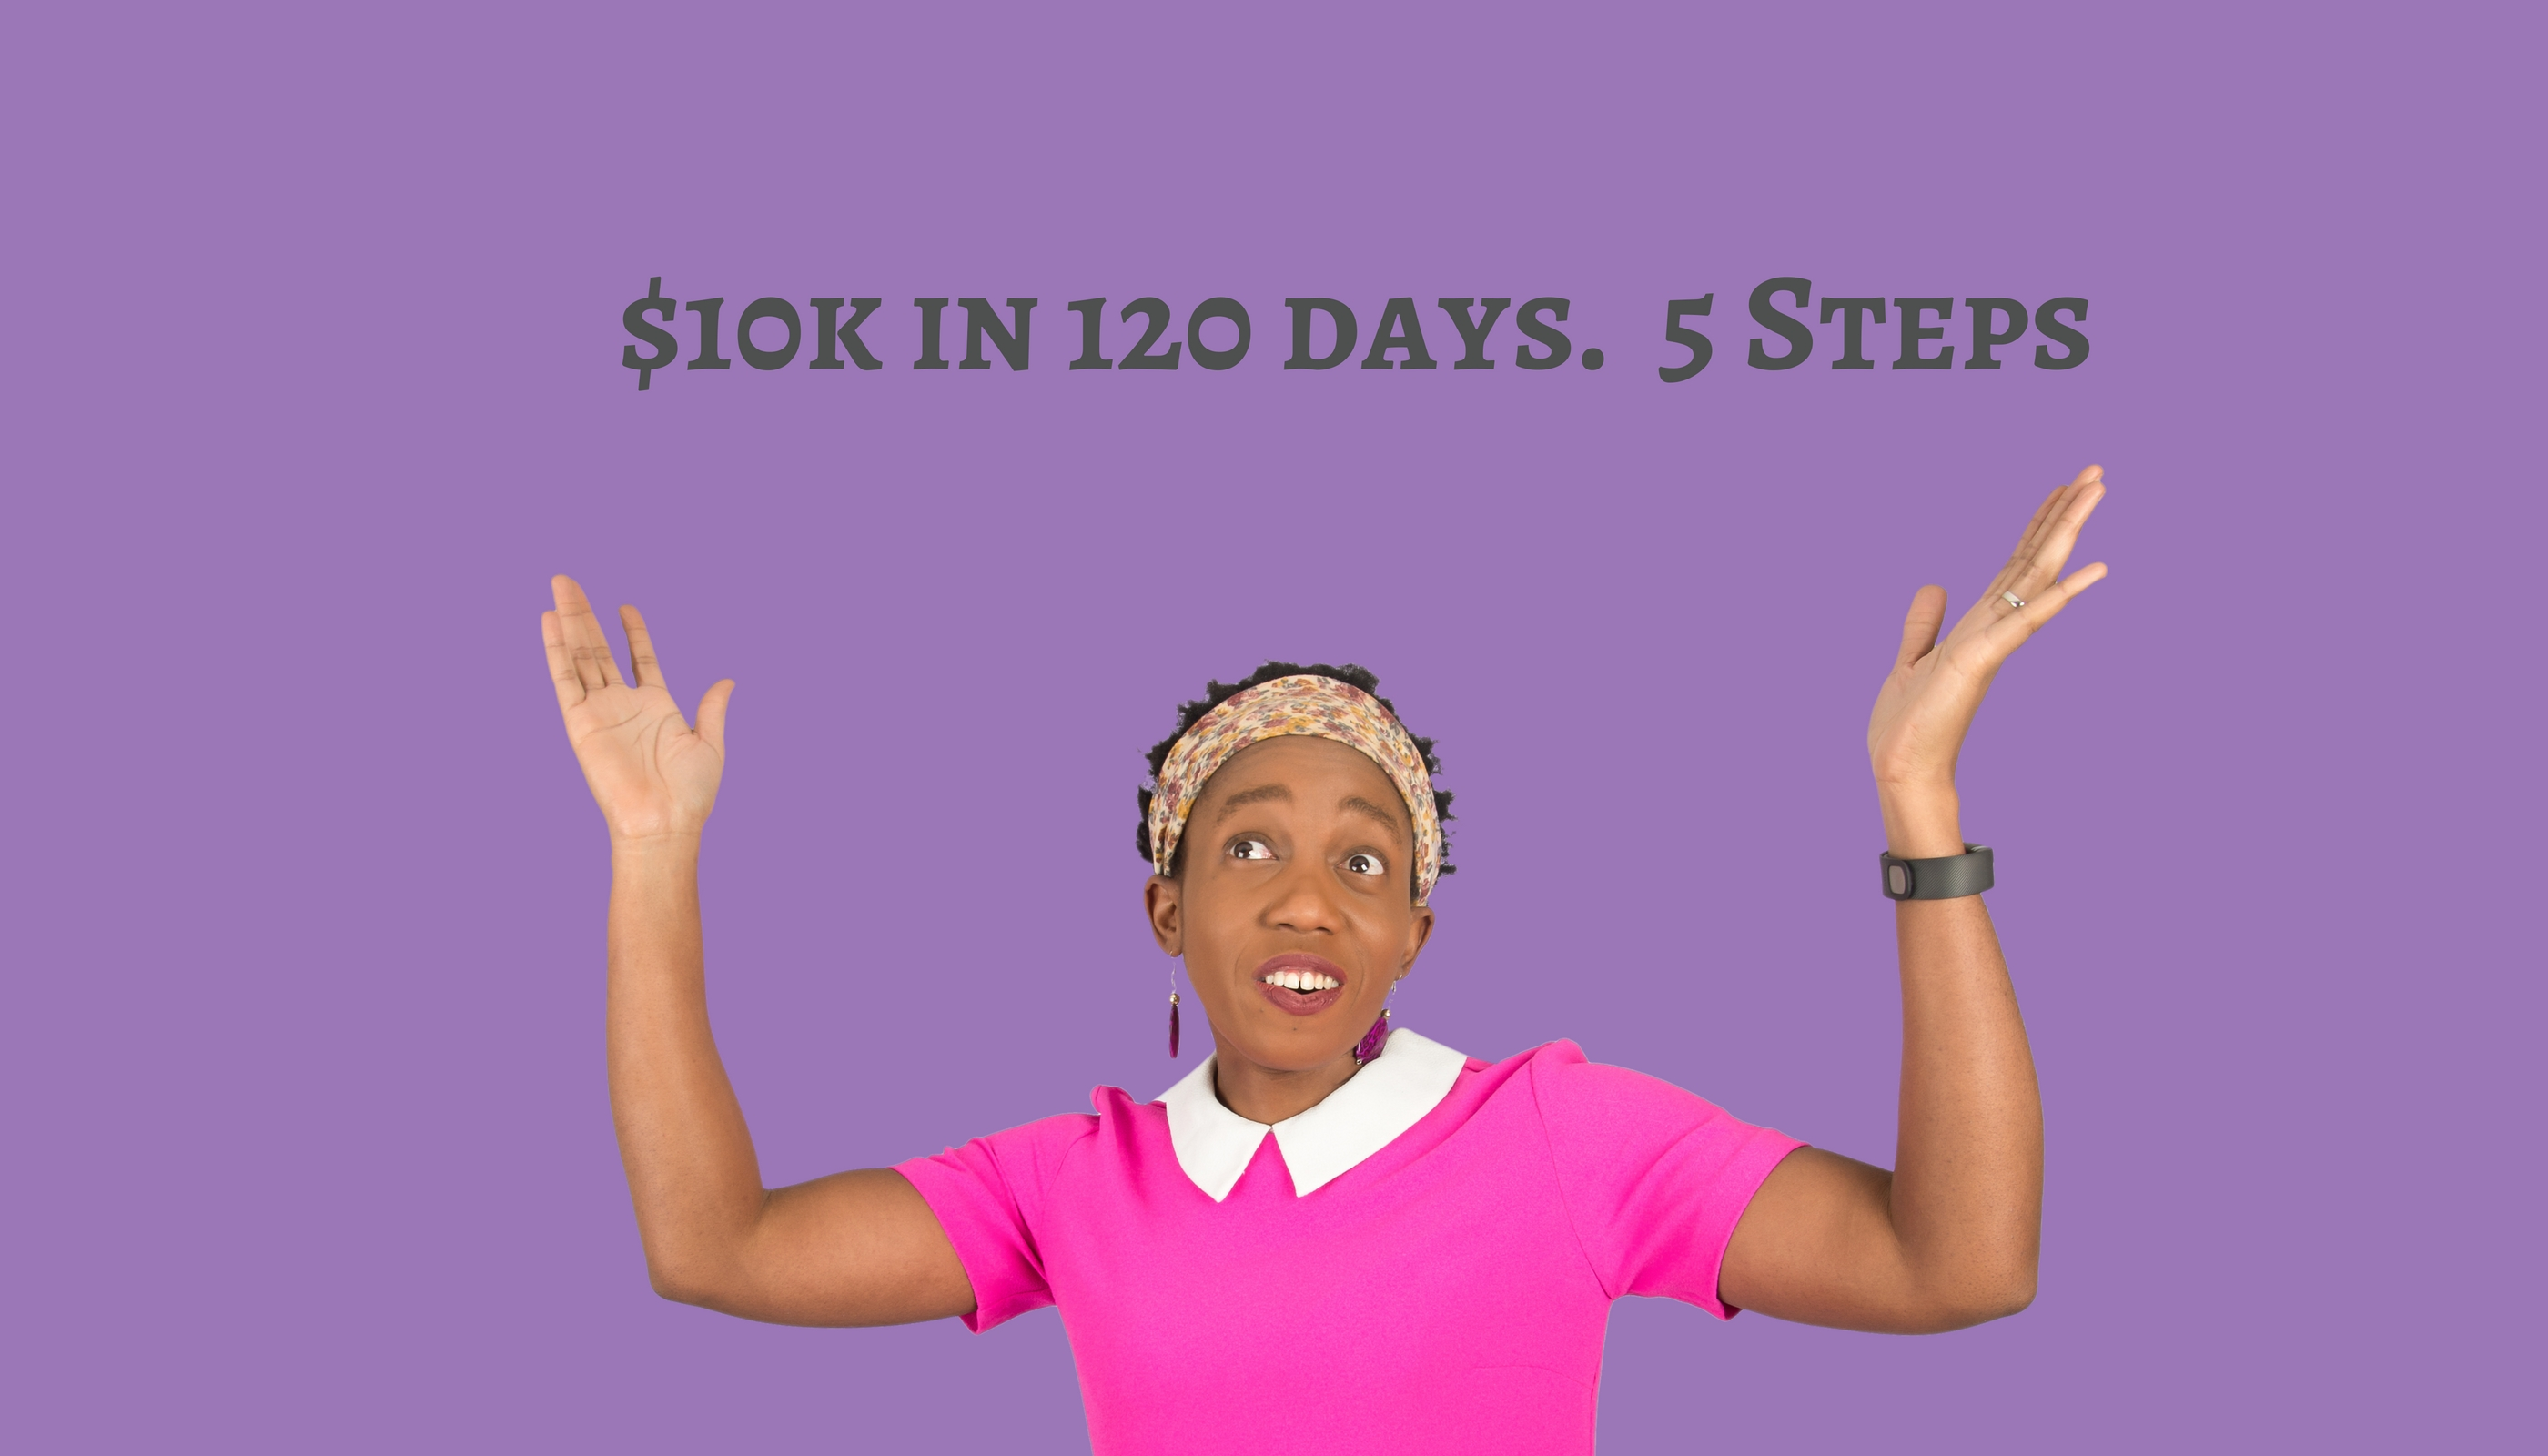 $10k in 120 days.  5 Steps – Mp3/Video